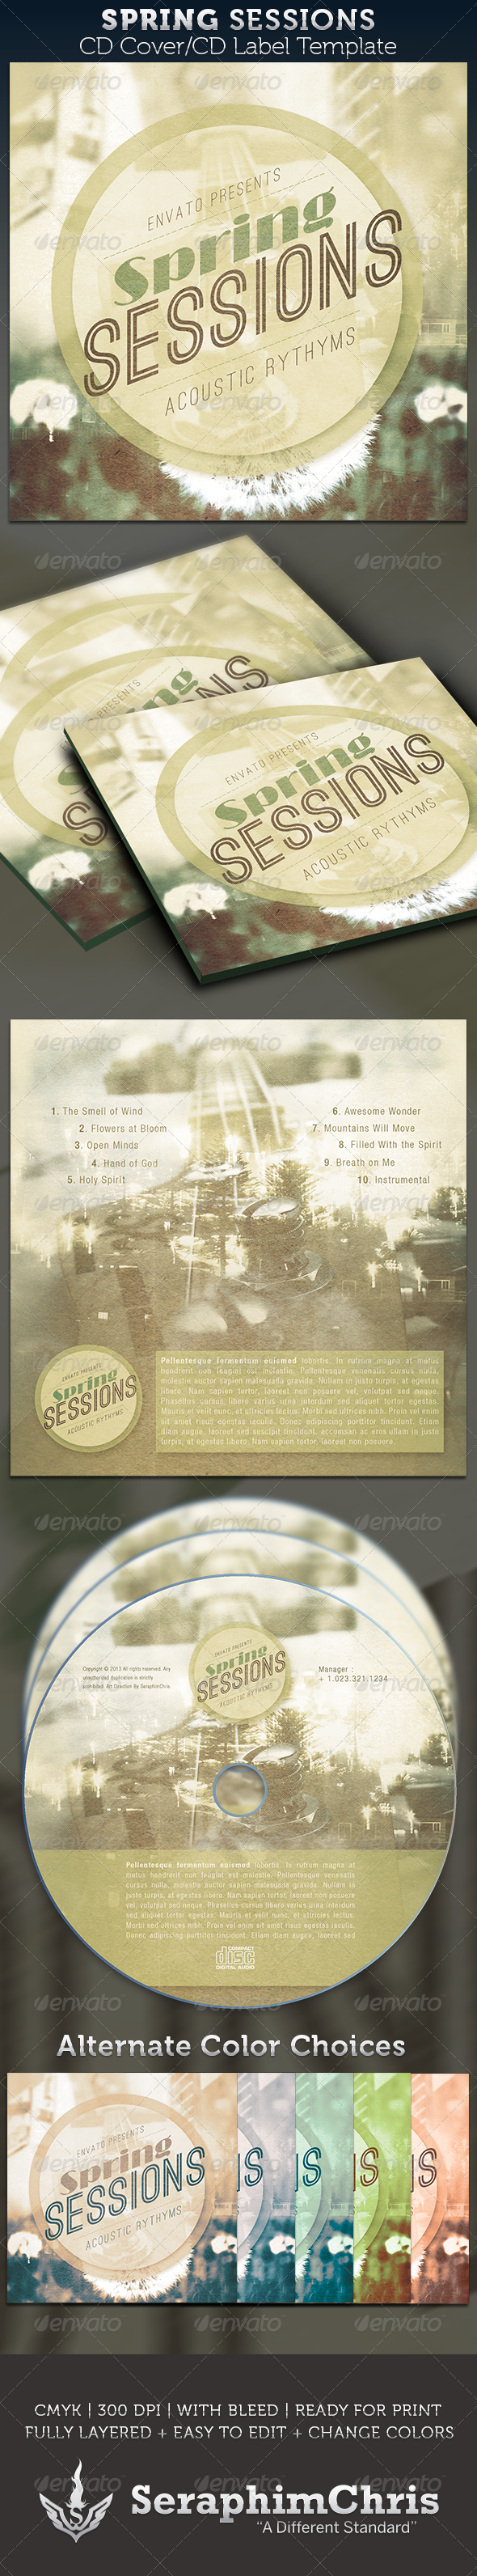 GraphicRiver Spring Sessions CD Cover Artwork Template 3833074